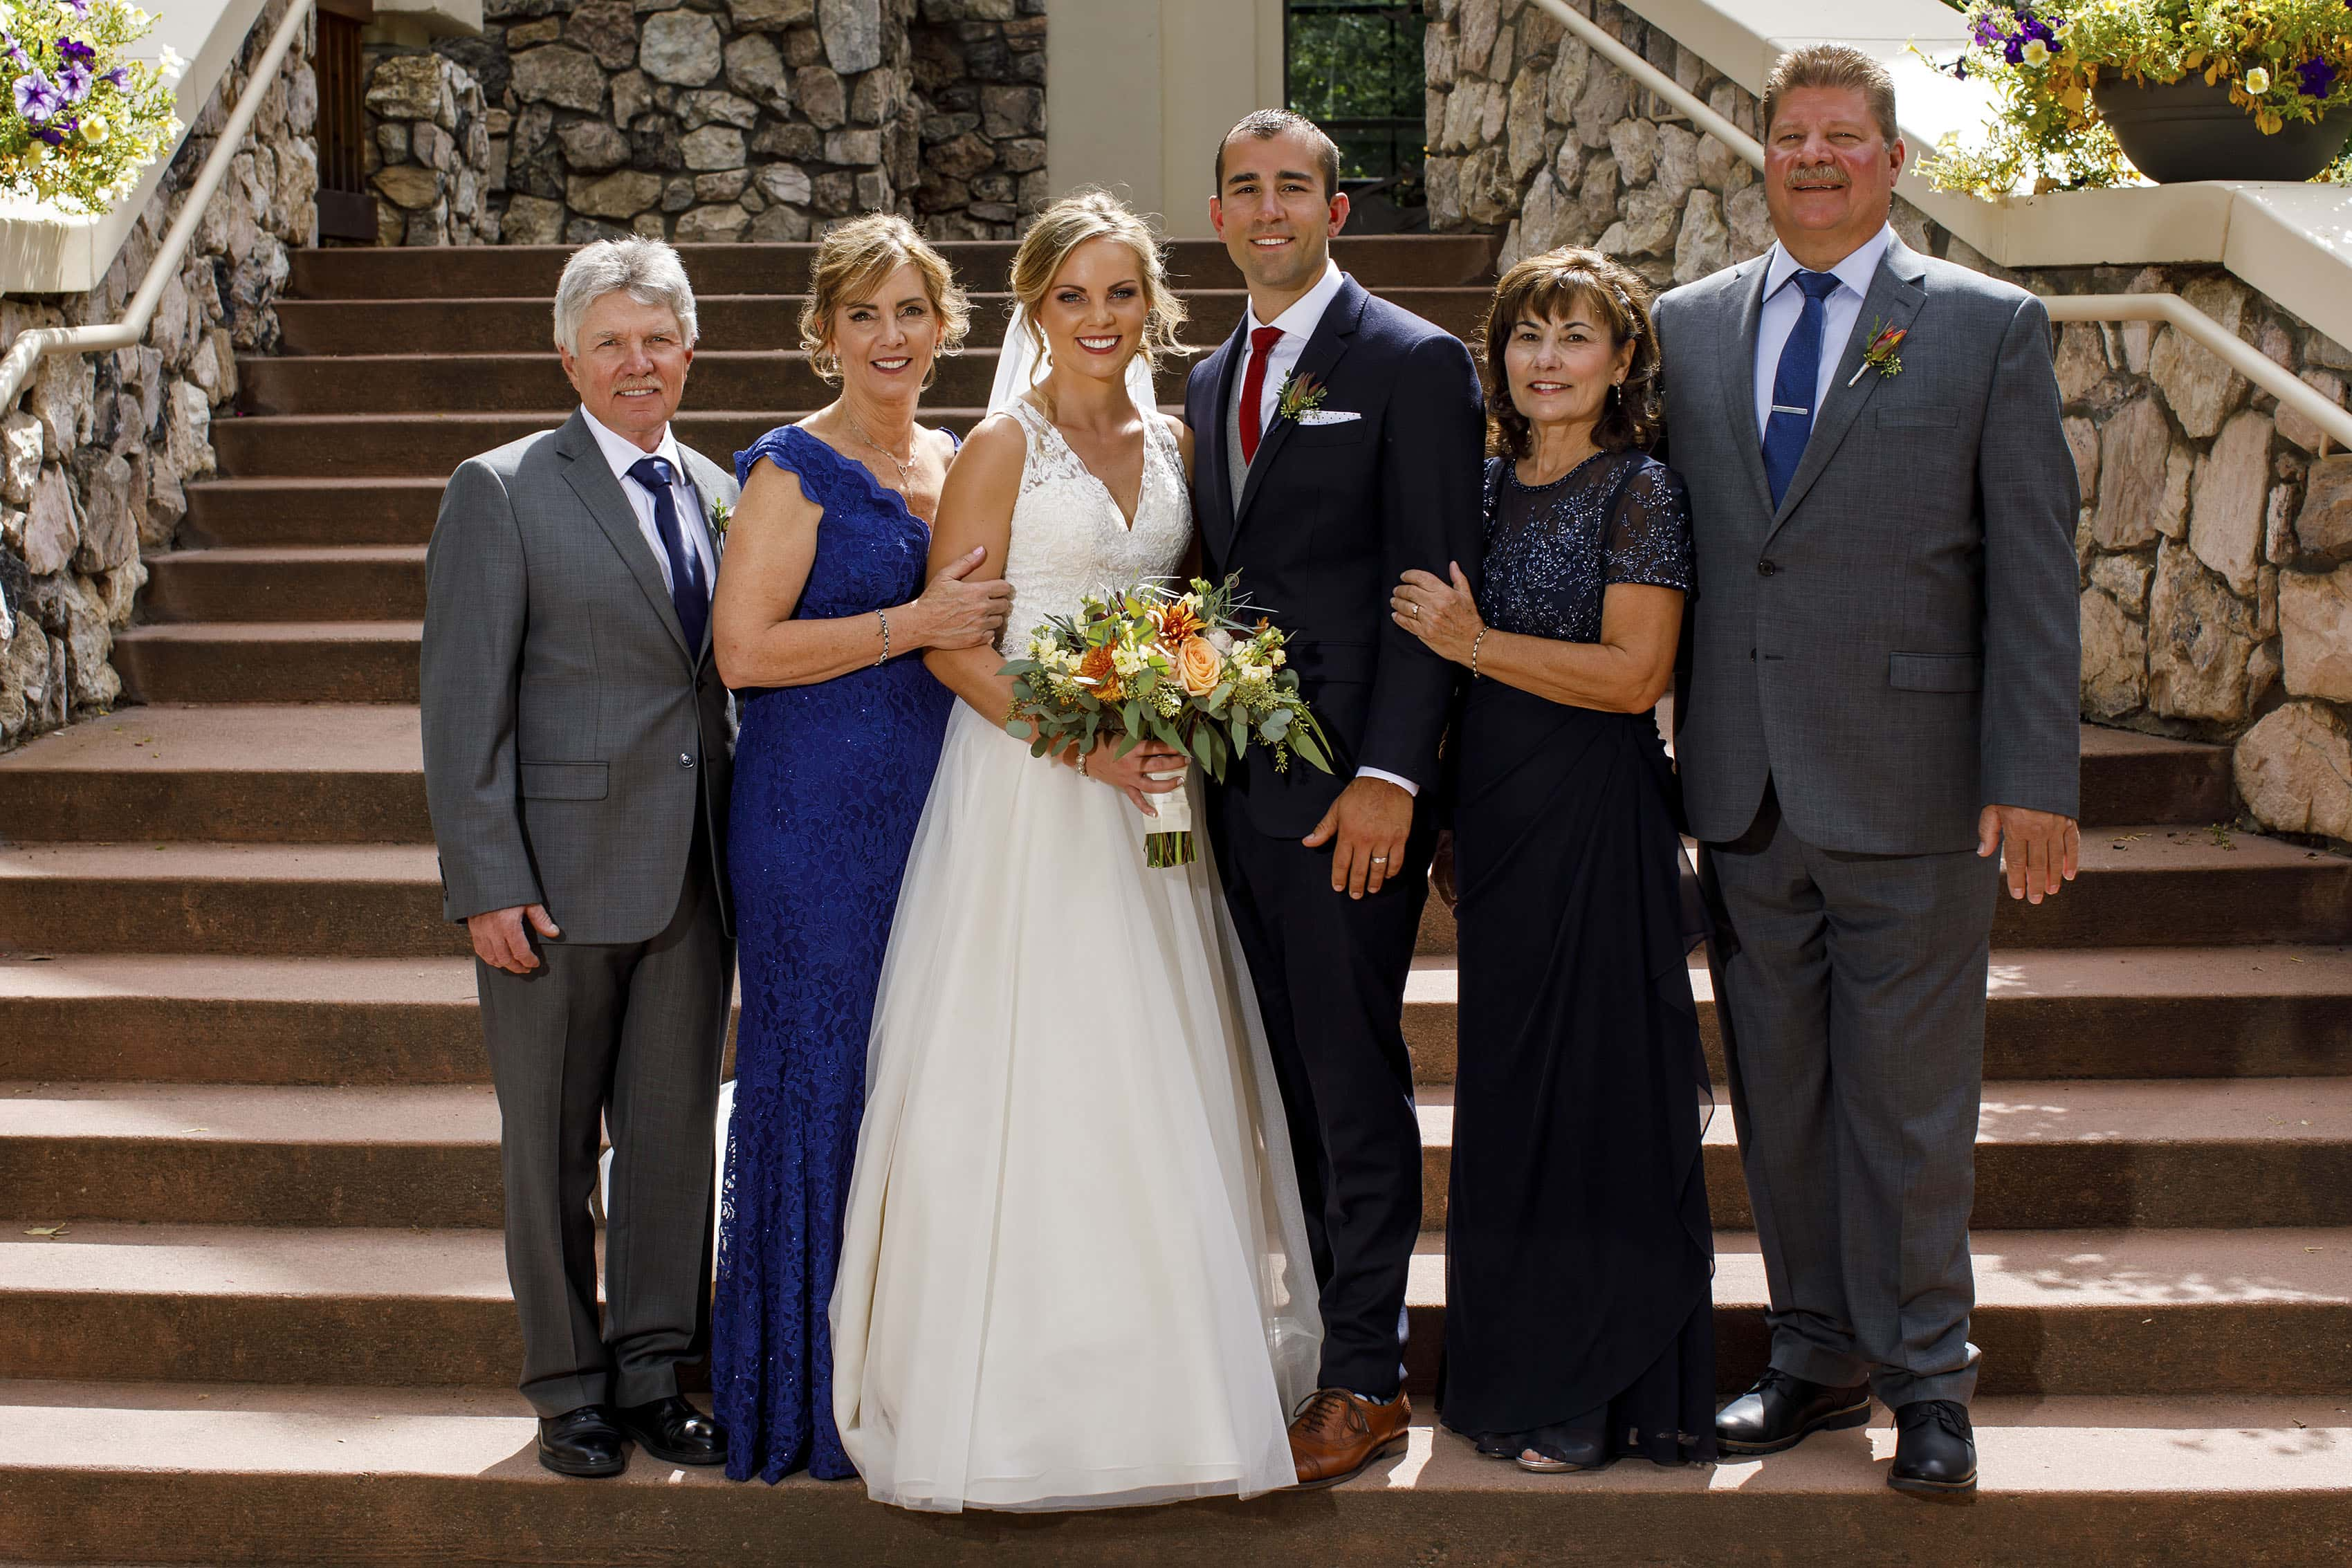 Newlyweds pose with their parents after their wedding ceremony at Beaver Creek Chapel